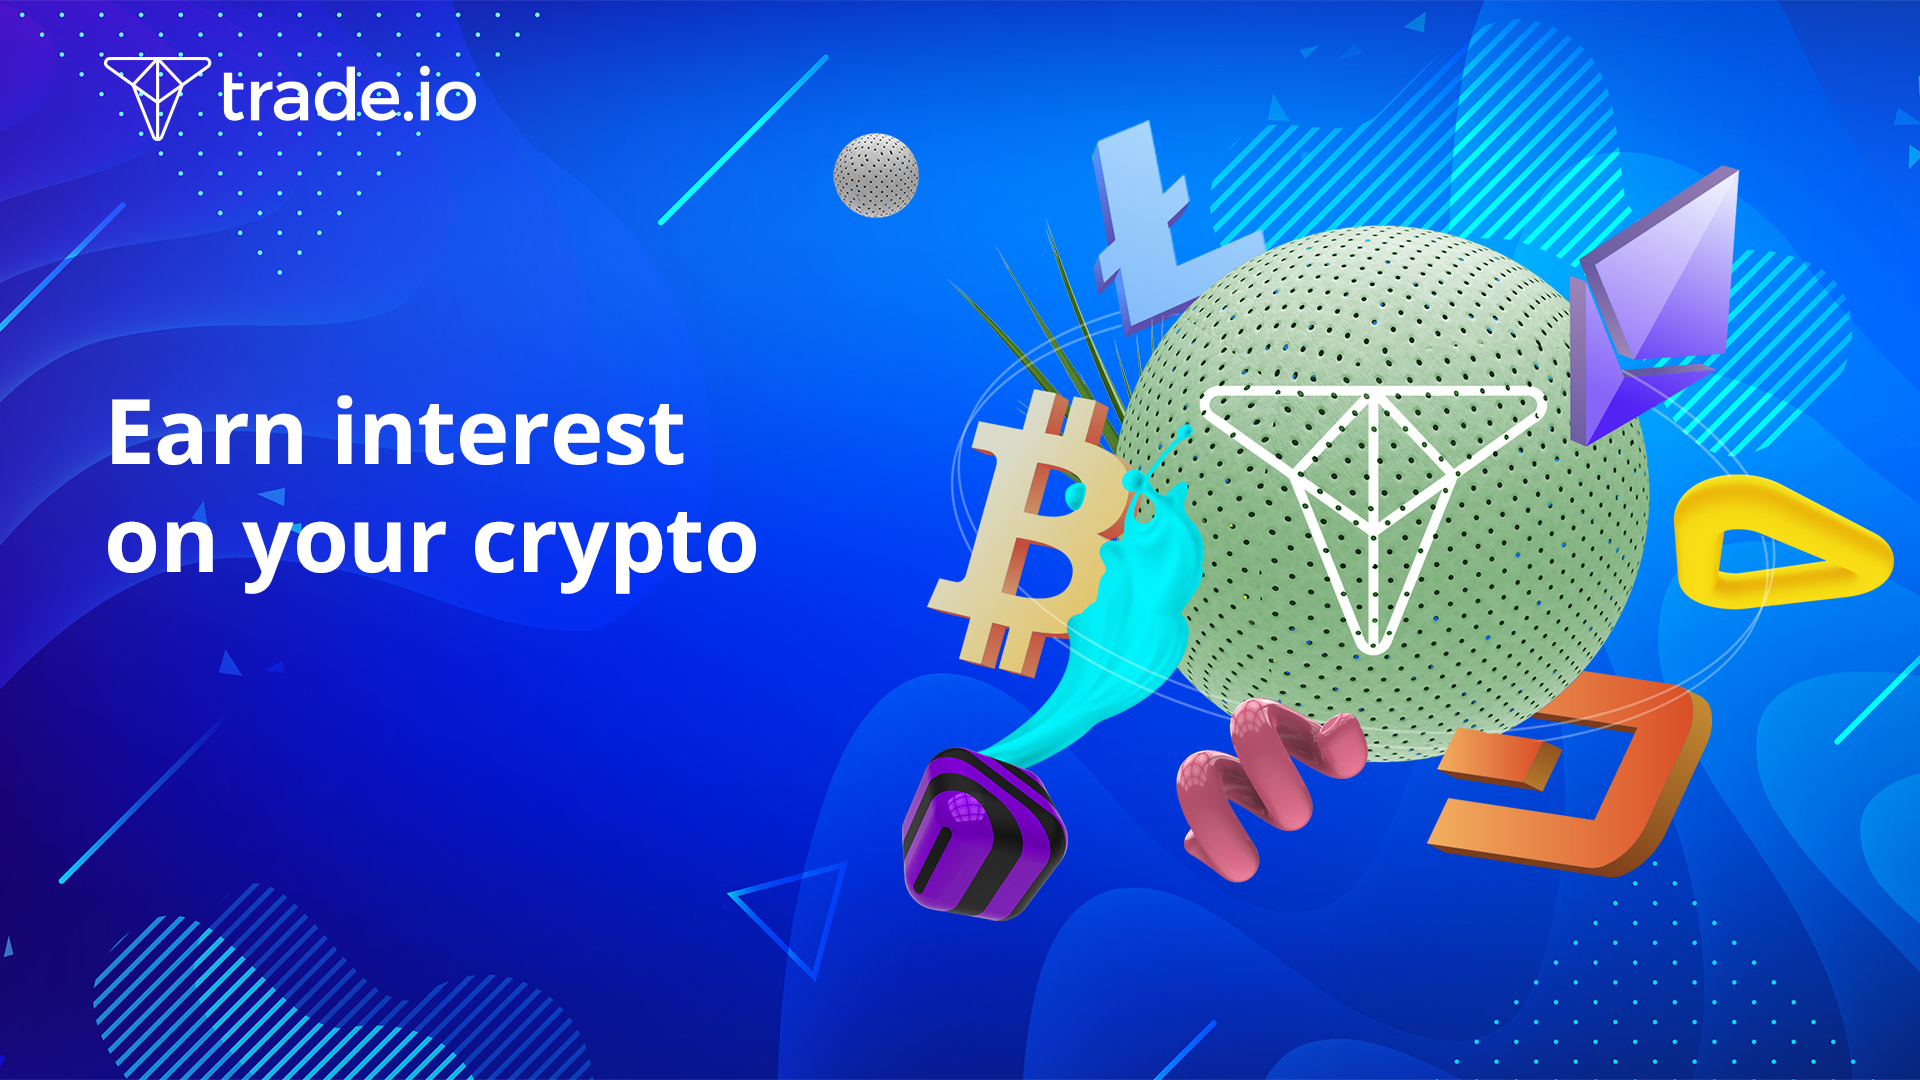 Earn interest on your crypto   Daily payouts, no long-term